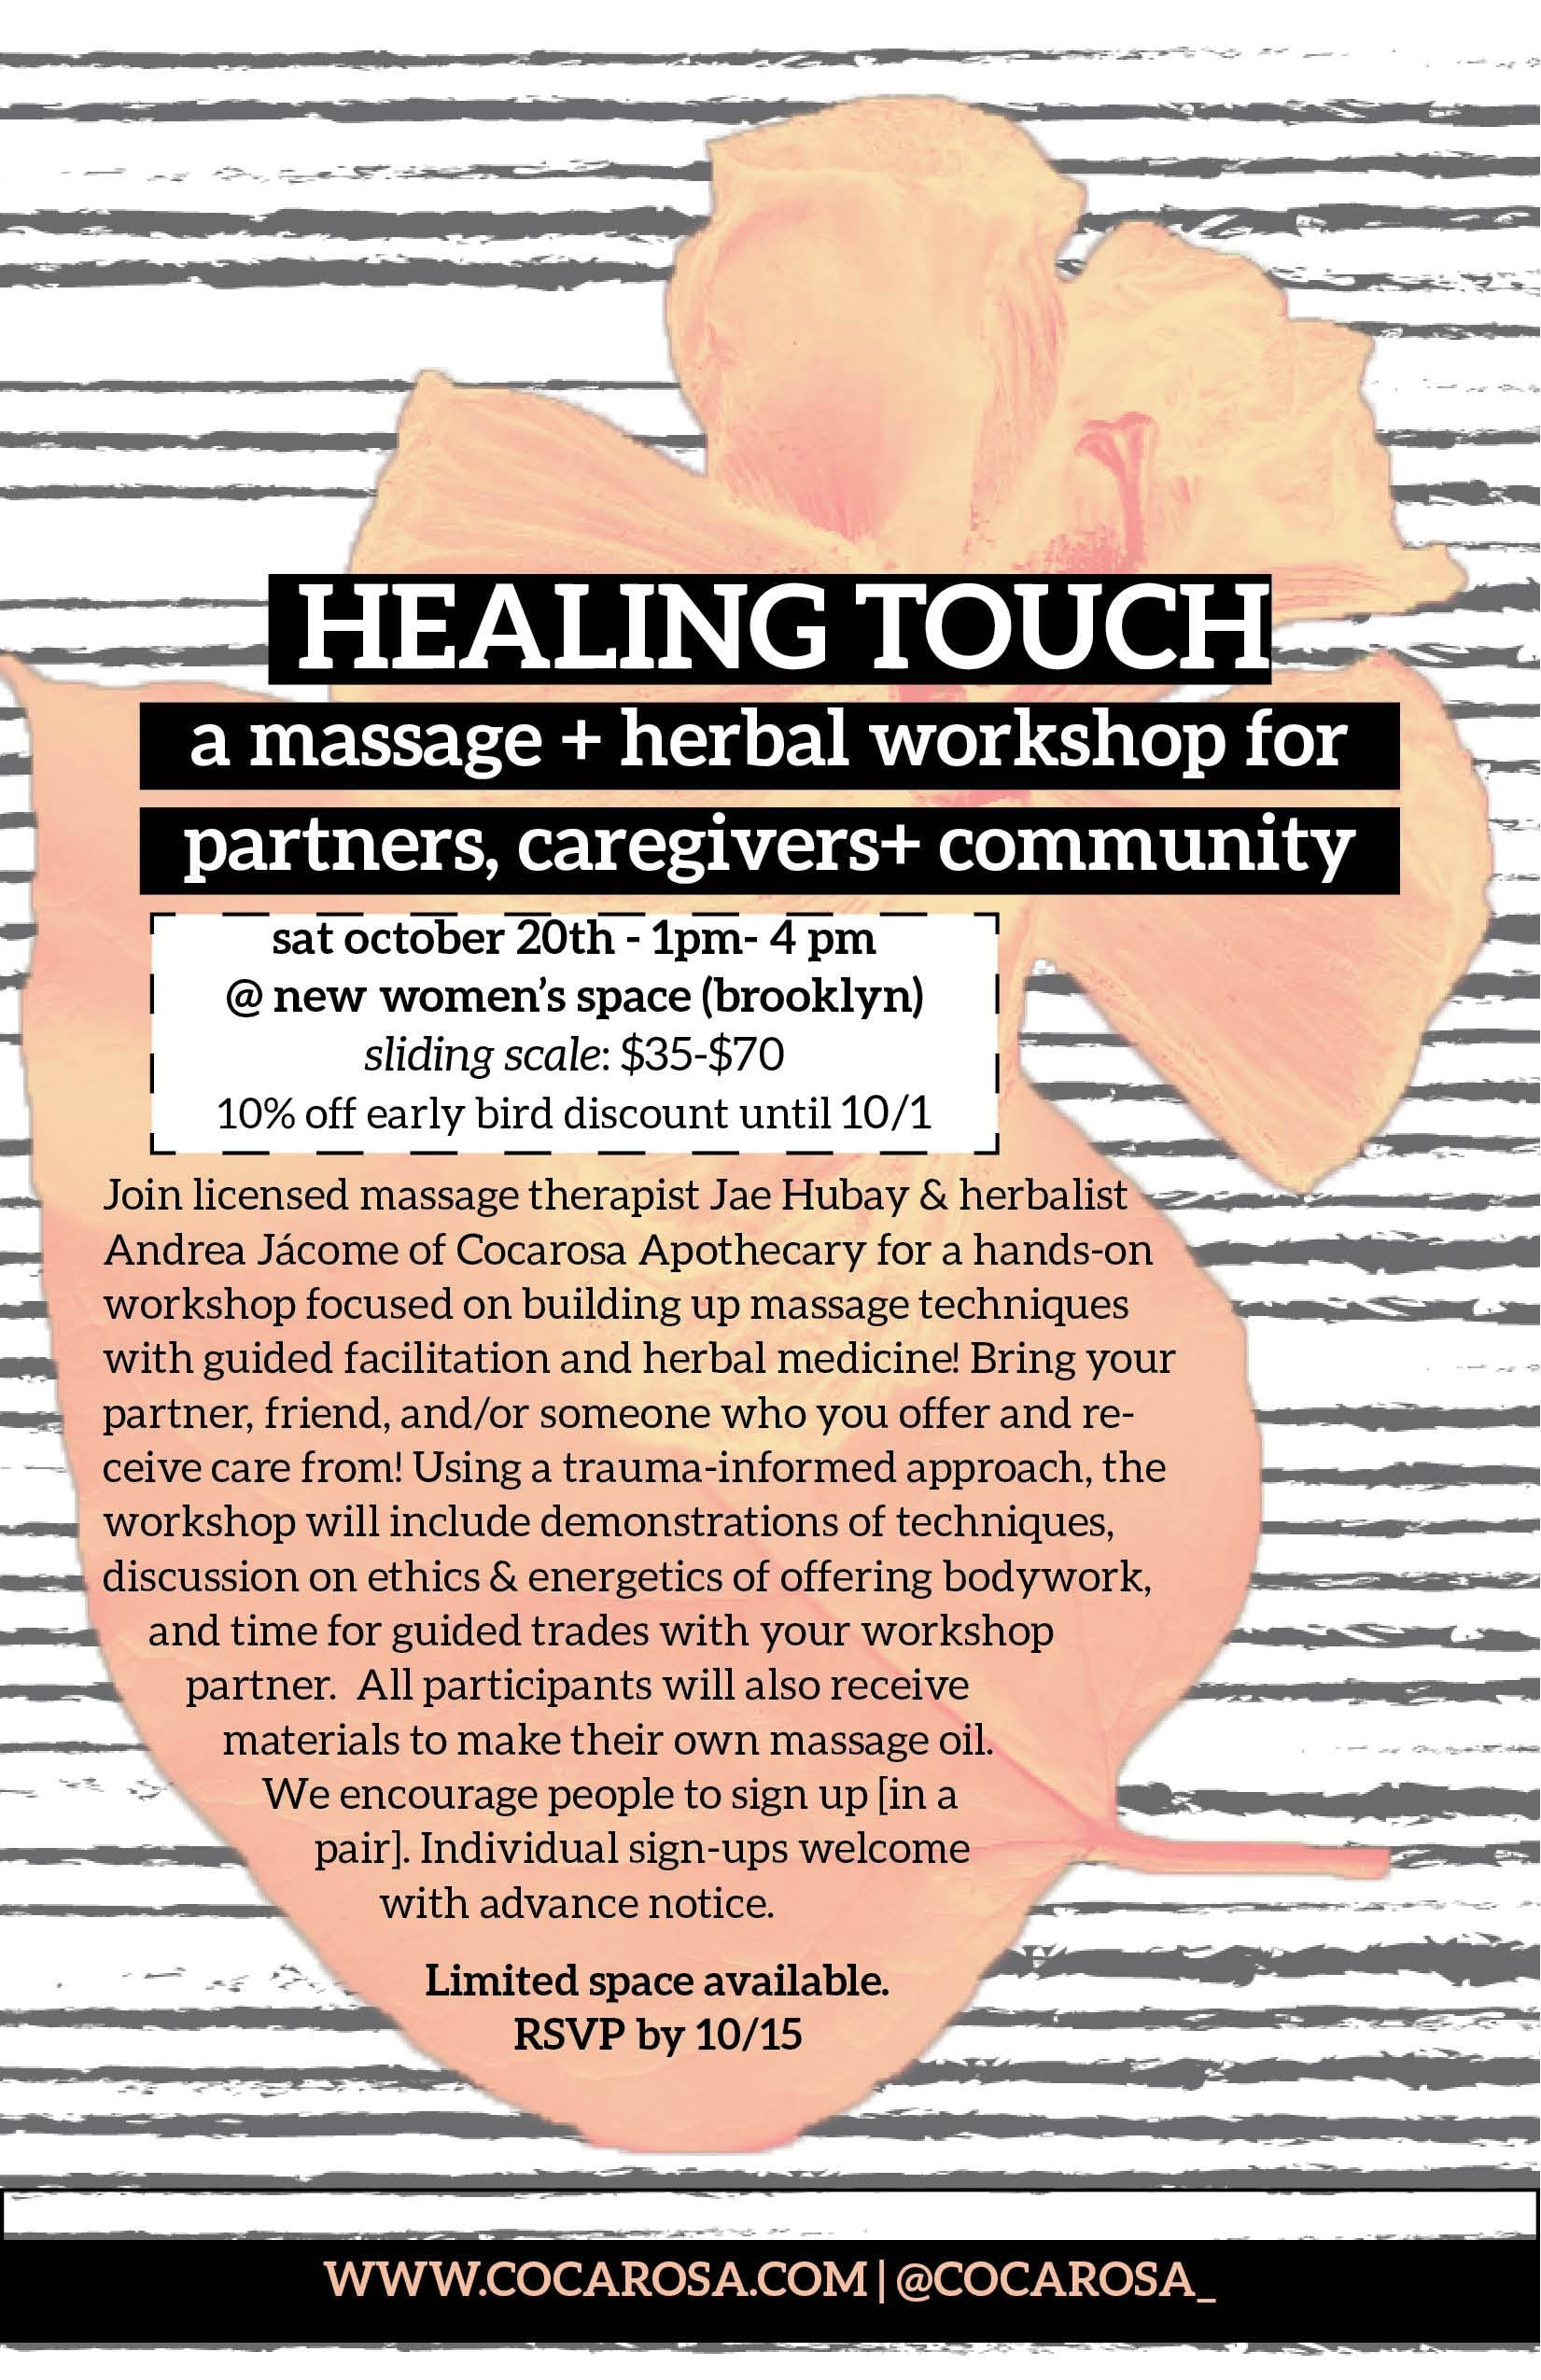 When Caregivers Need Healing >> Healing Touch A Massage Herbal Workshop For Partners Caregivers